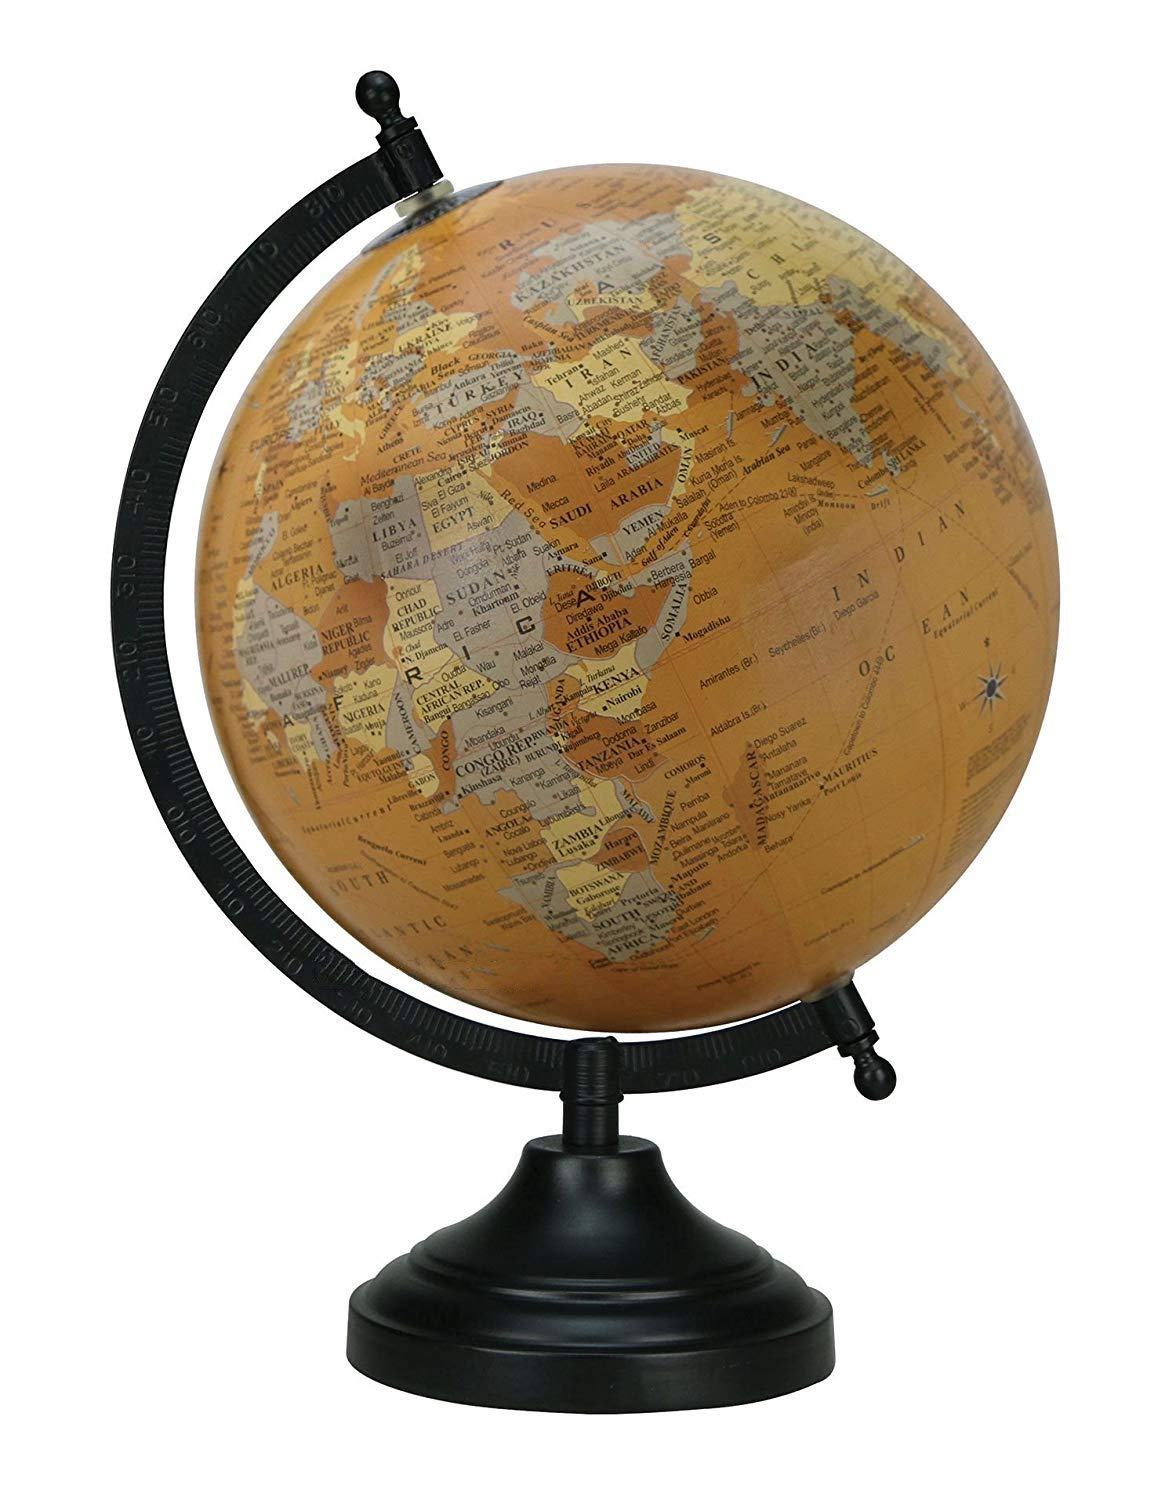 Home Decor Antique Globe with Black Matt Arc and Base World Globe 8 Mustard Educational Gift Item by Globes Hub Office Decor